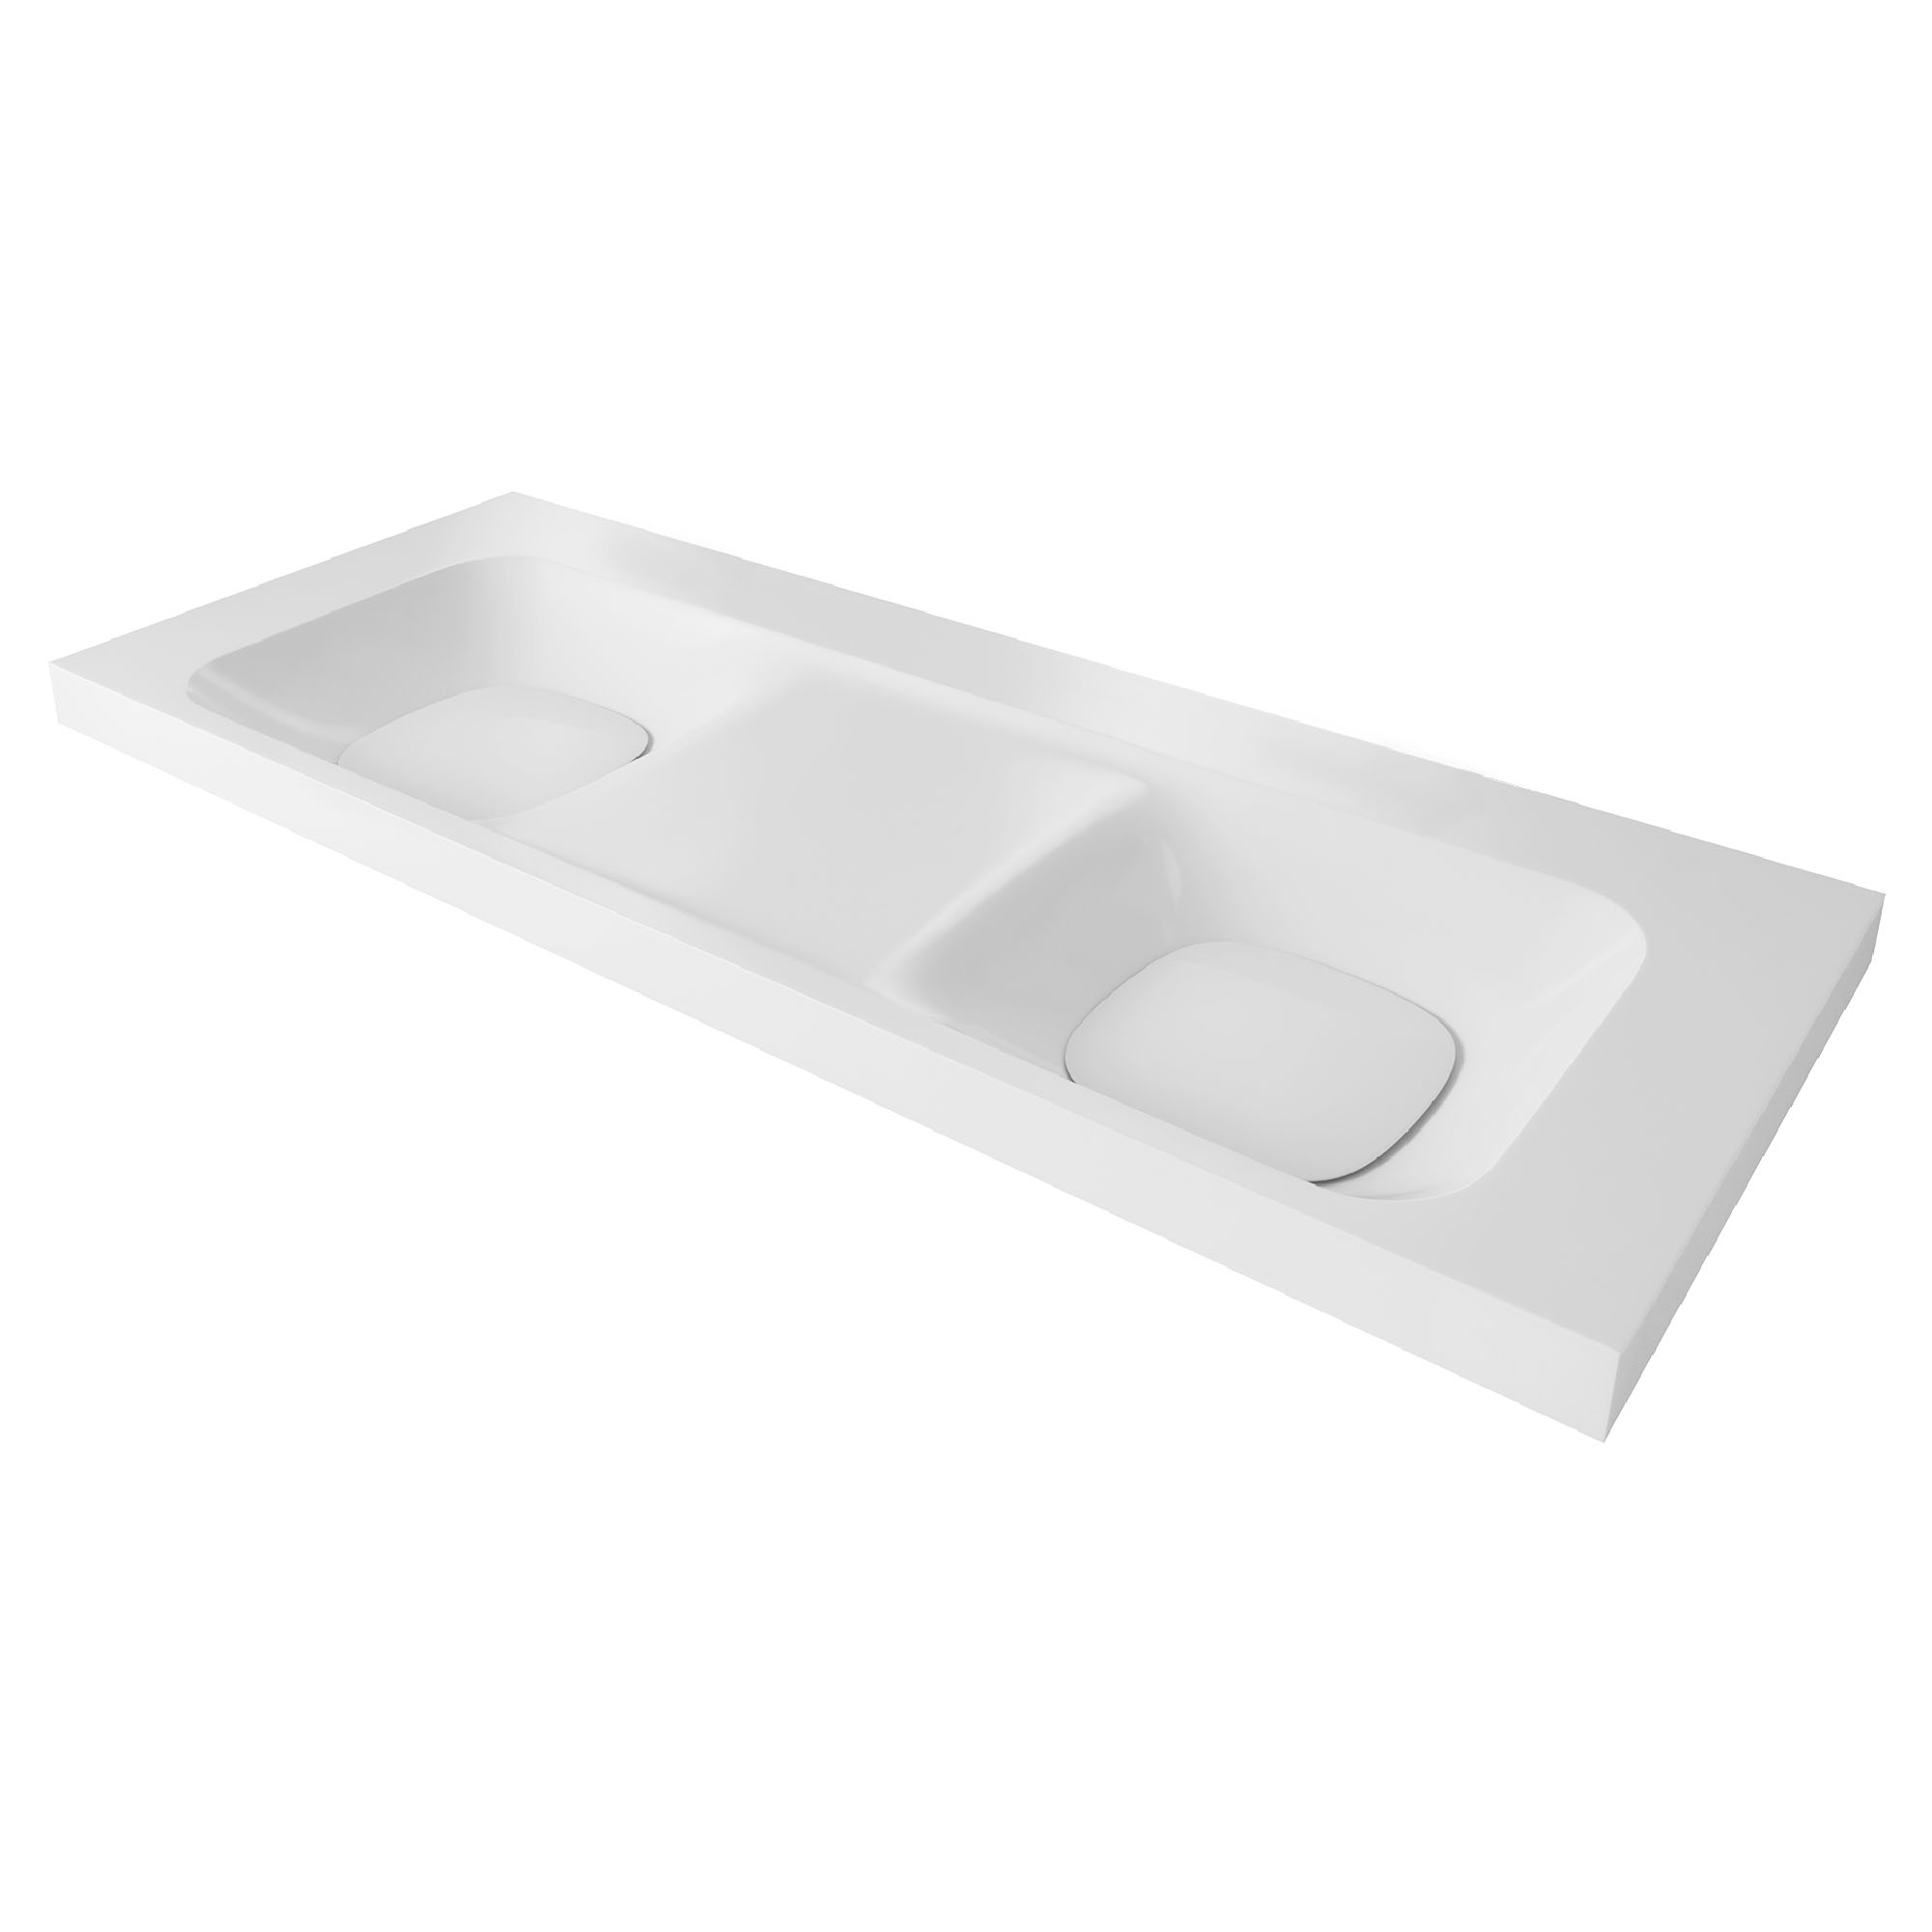 DXV Modulus 55-inch Double Bathroom Sink